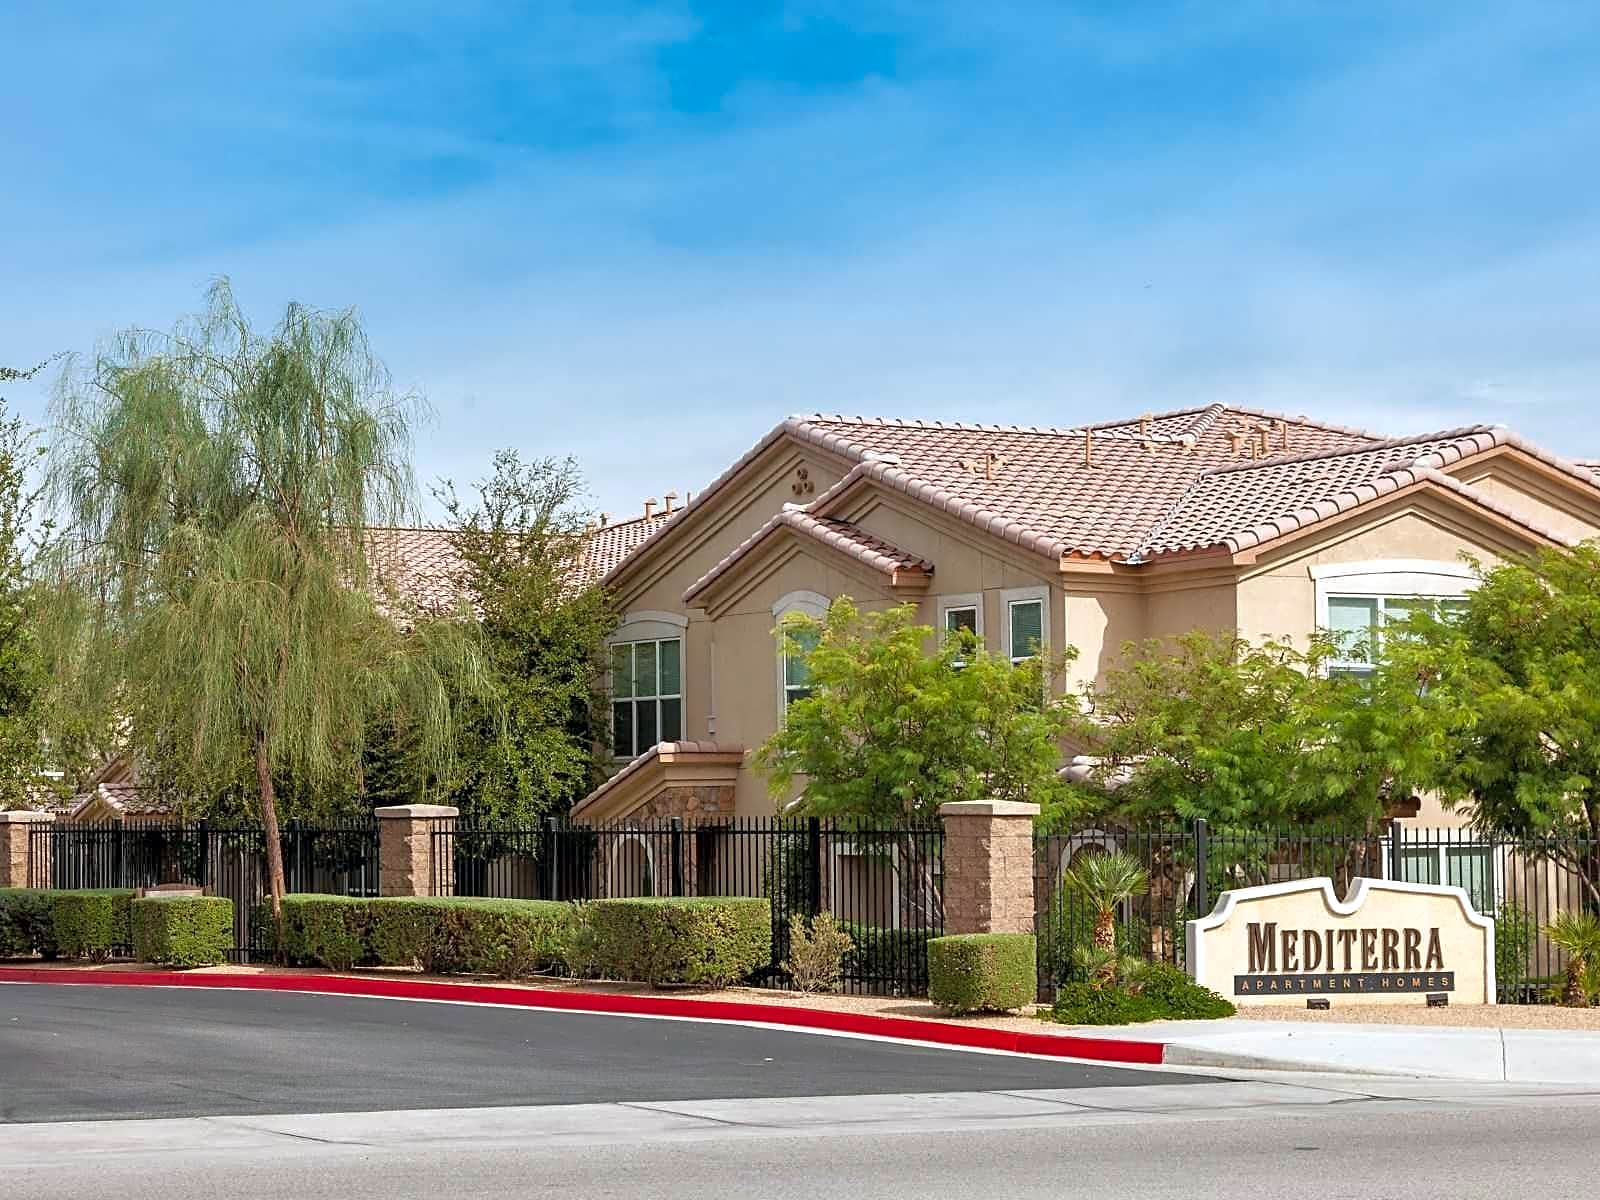 Mediterra Apartments Homes for rent in La Quinta